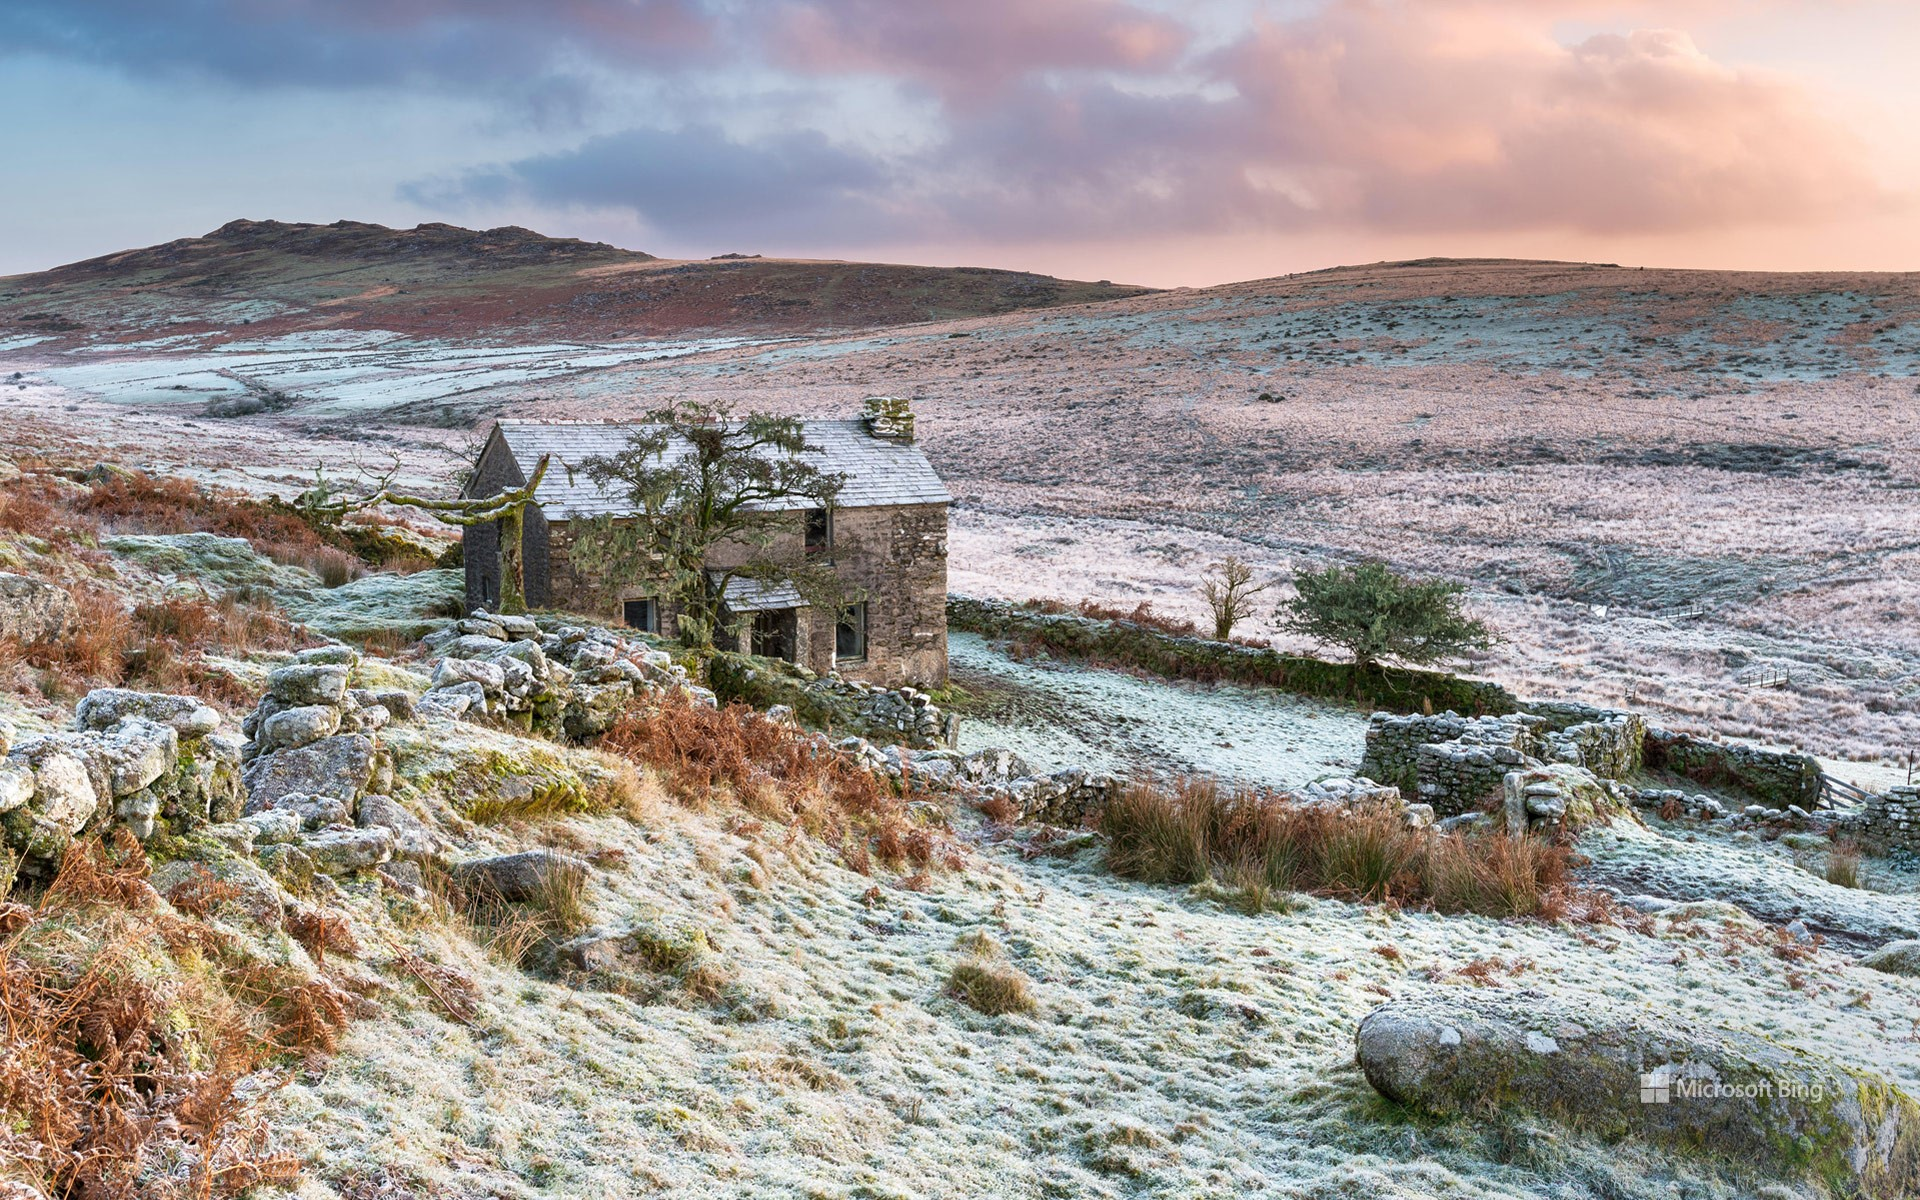 Sunset over an abandoned cottage on the foothills of Brown Willy on Bodmin Moor, the highest point in Cornwall